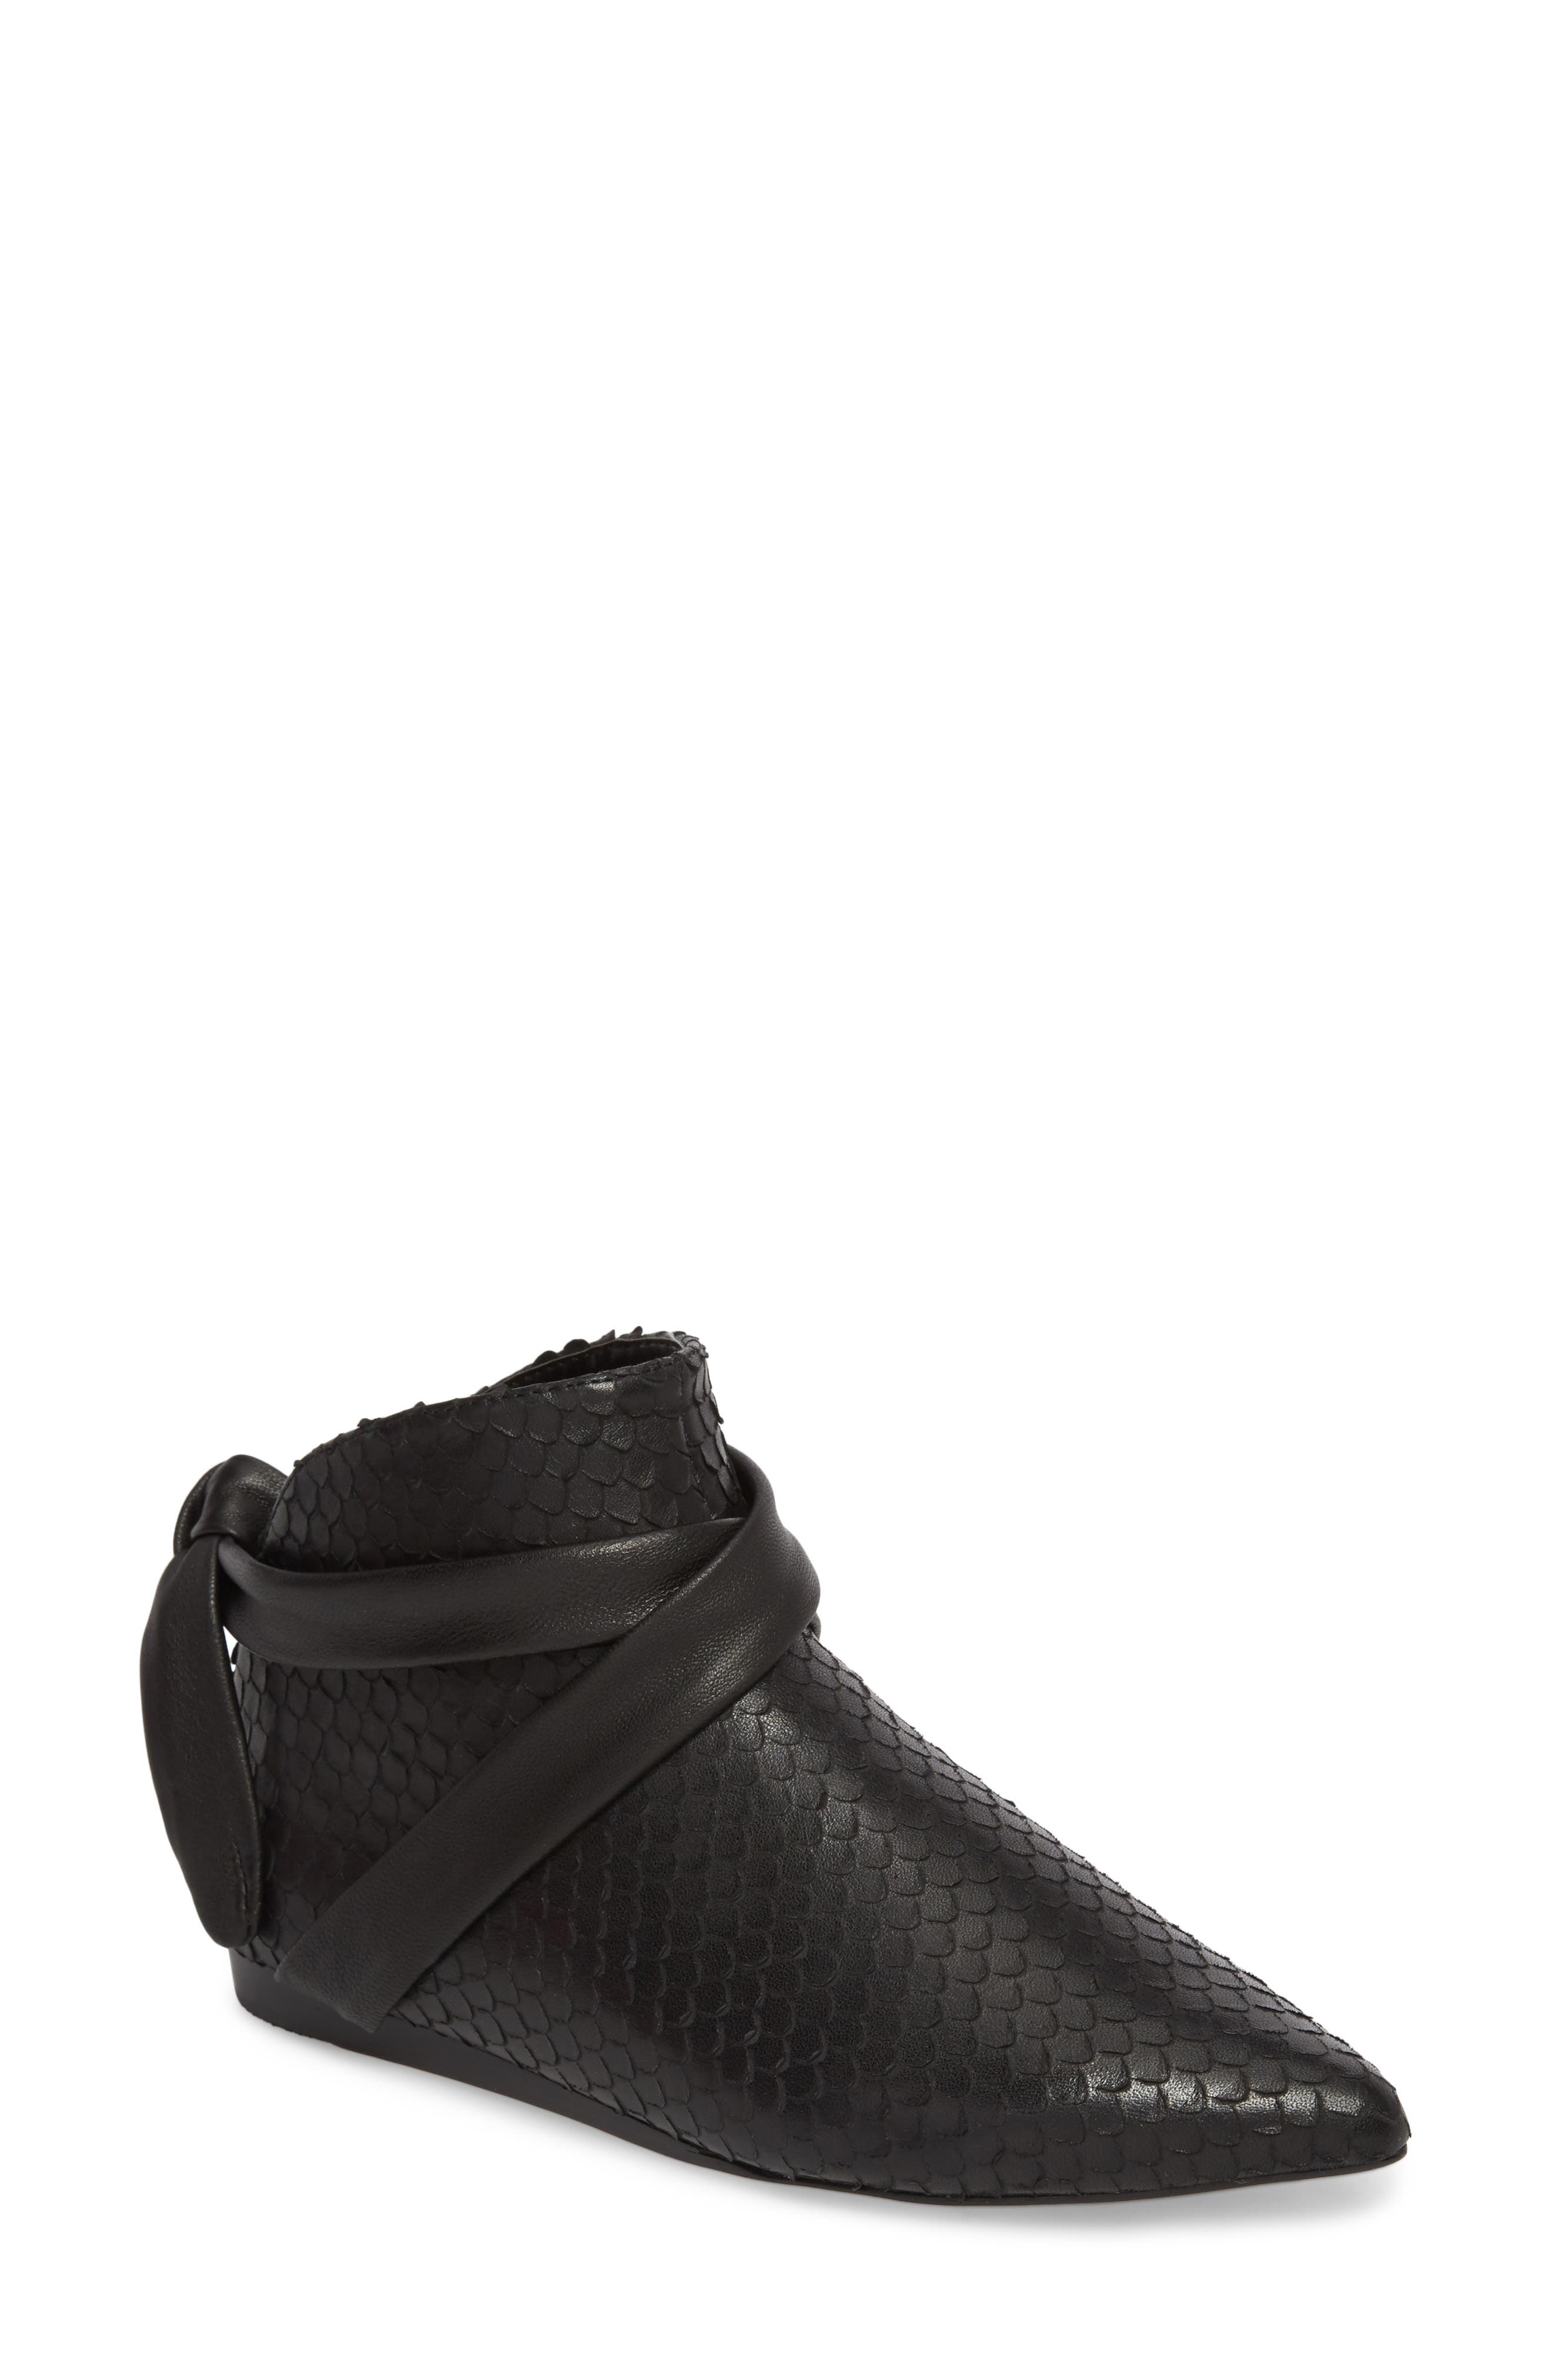 M4D3 Derby Bootie,                         Main,                         color, Black Leather